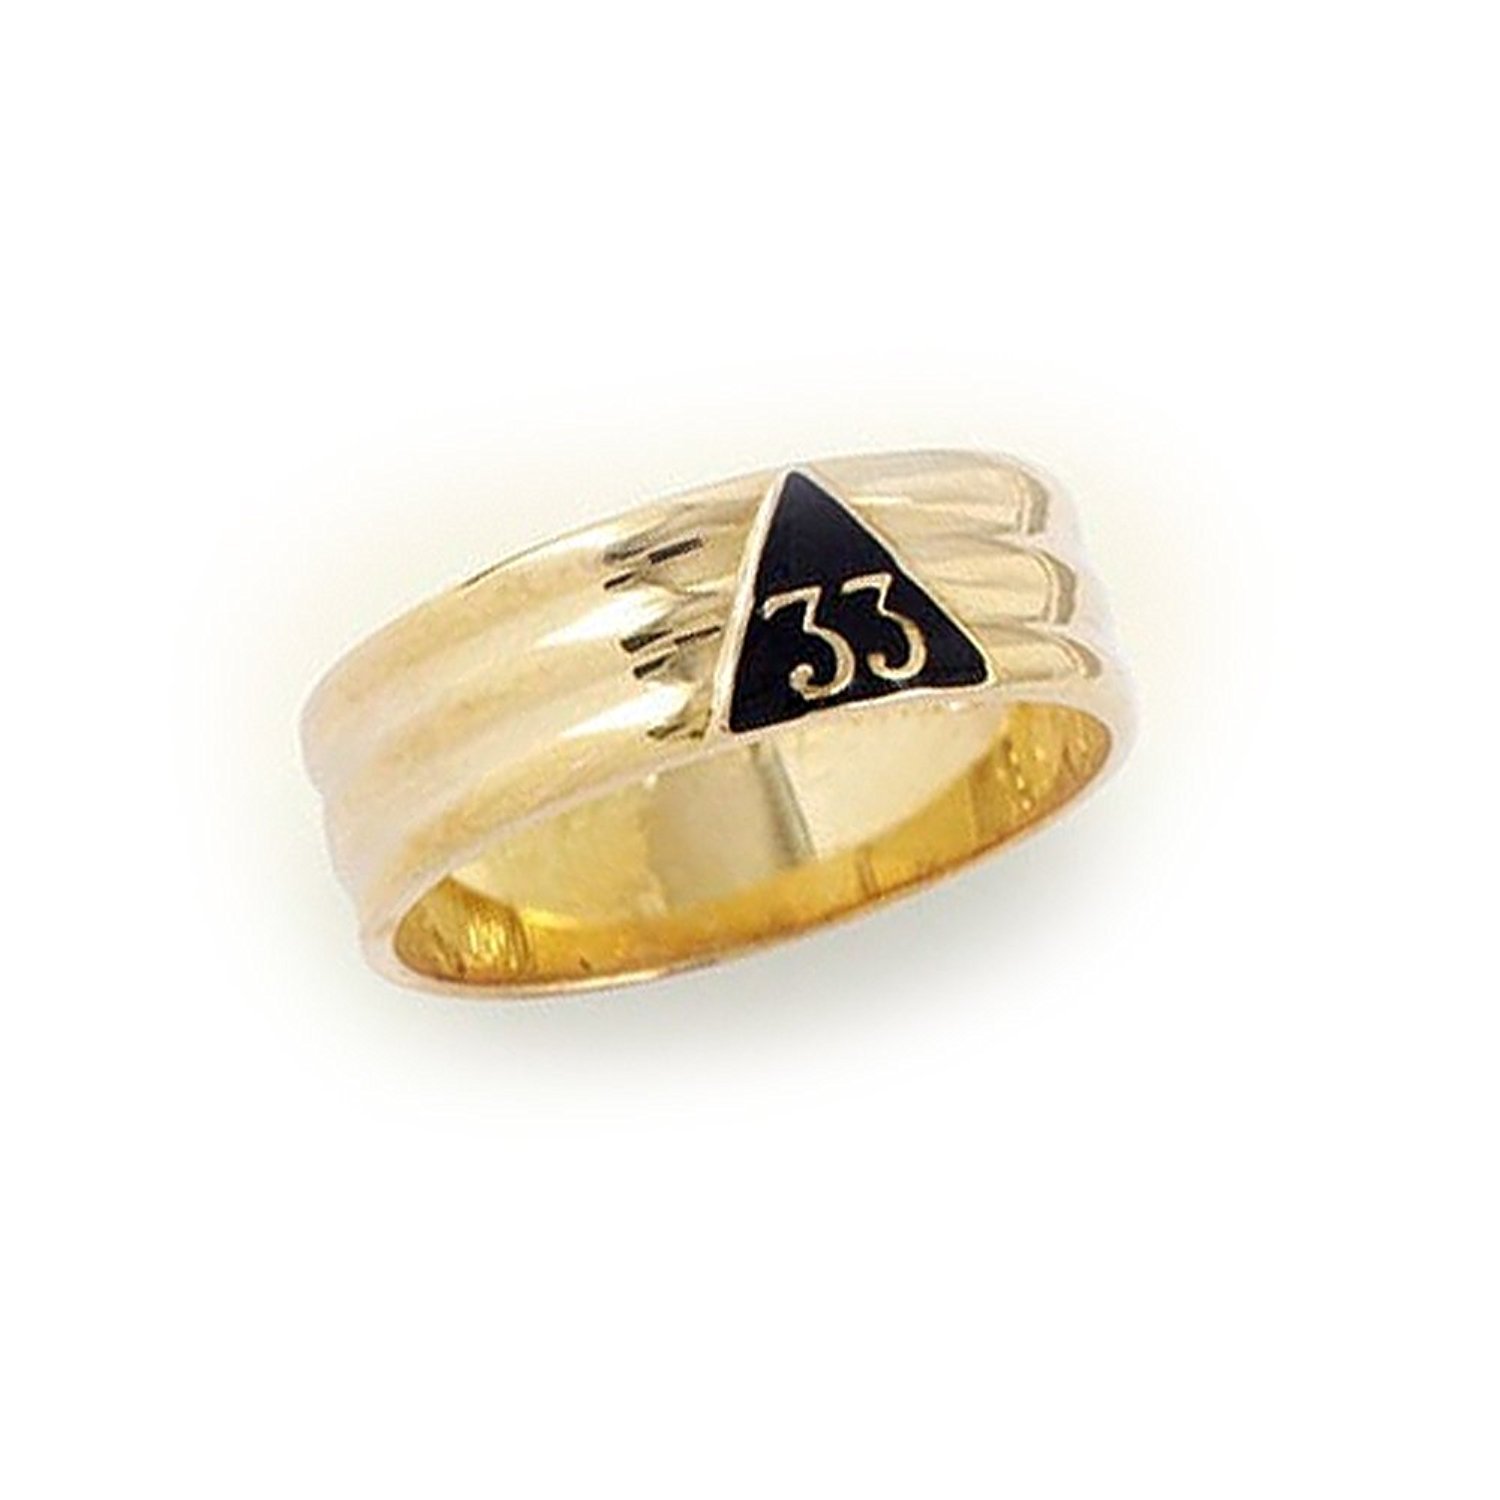 Gold Plated - Scotttish Rite 33rd Degree Grooved Band - Stainless Steel Freemason Ring / Masonic Ring - Freemason's Jewelry Masonic Rings for Free Masons